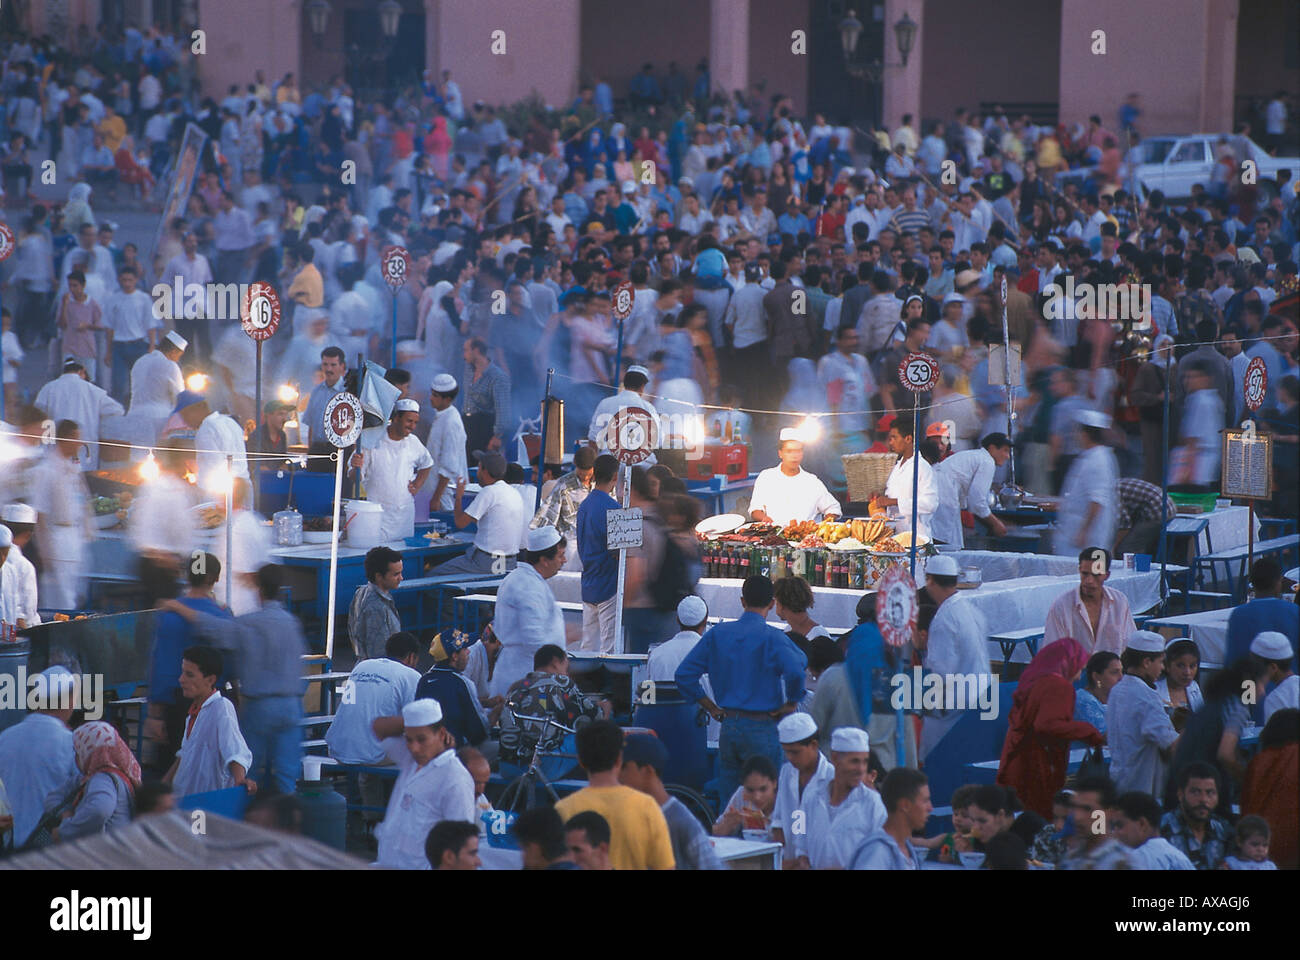 Crowd and cookshops on the Nightmarket, Djemaa el-Fna, Marrakech, Morocco - Stock Image